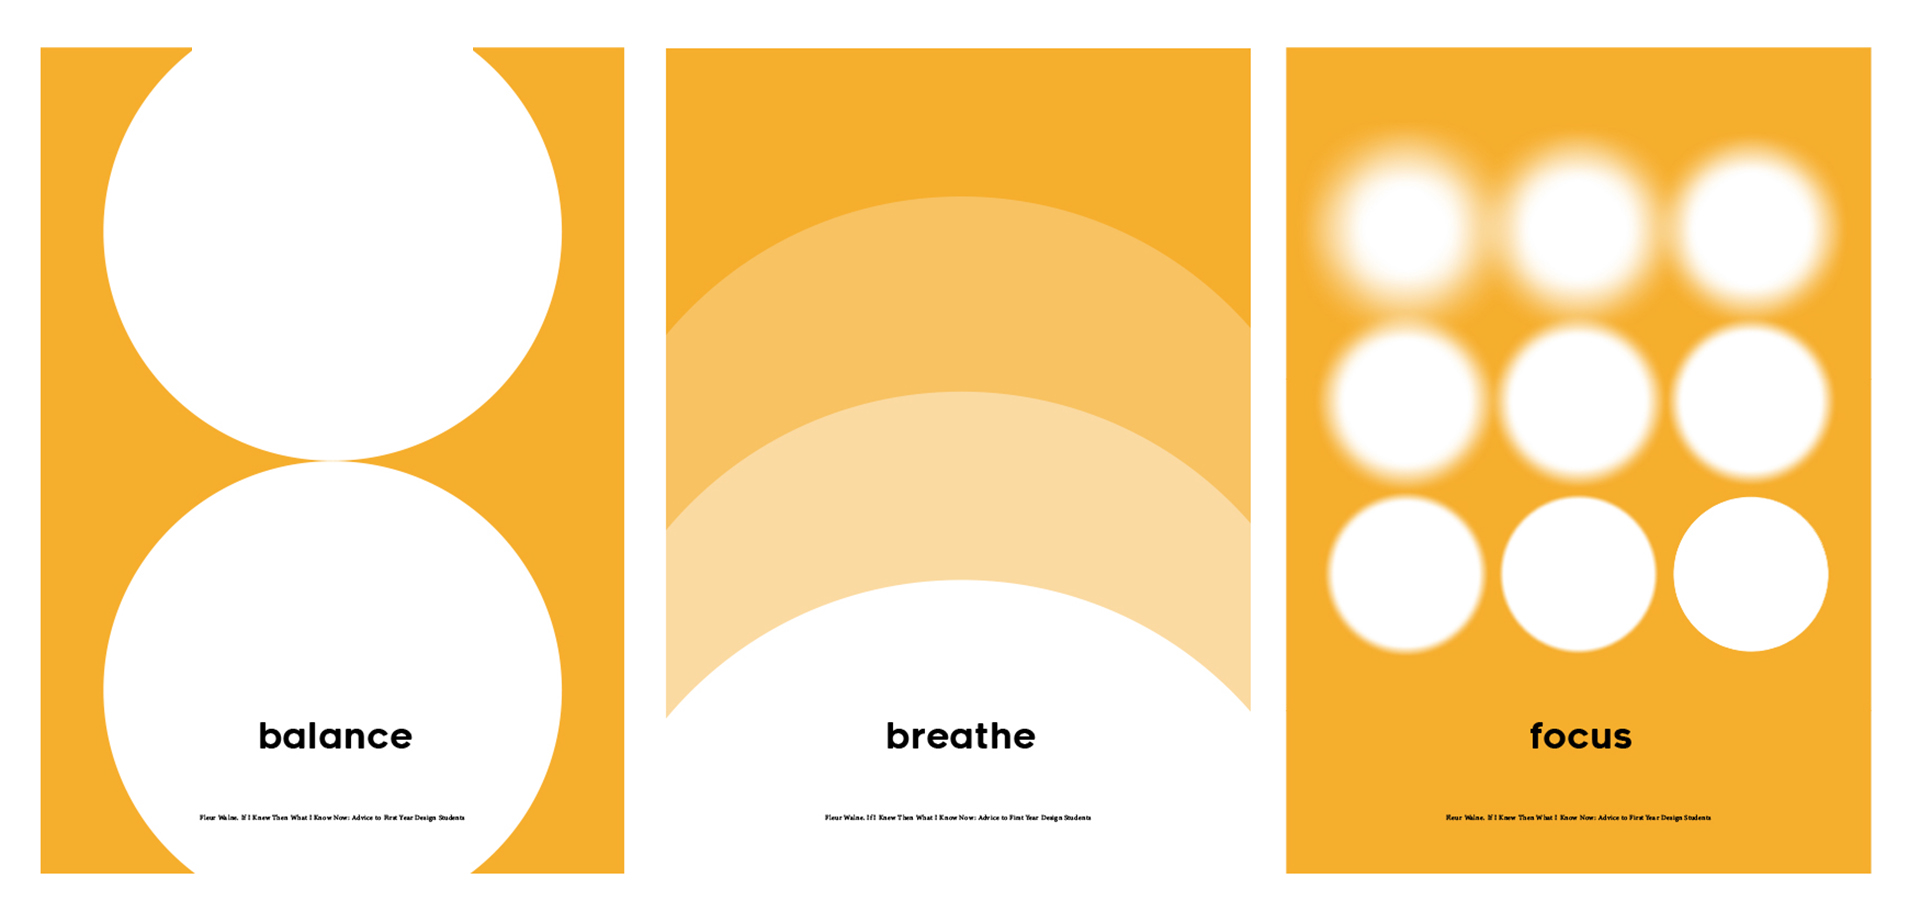 Three posters using circles on an orange background with text 'balance', 'breathe', and 'focus'.